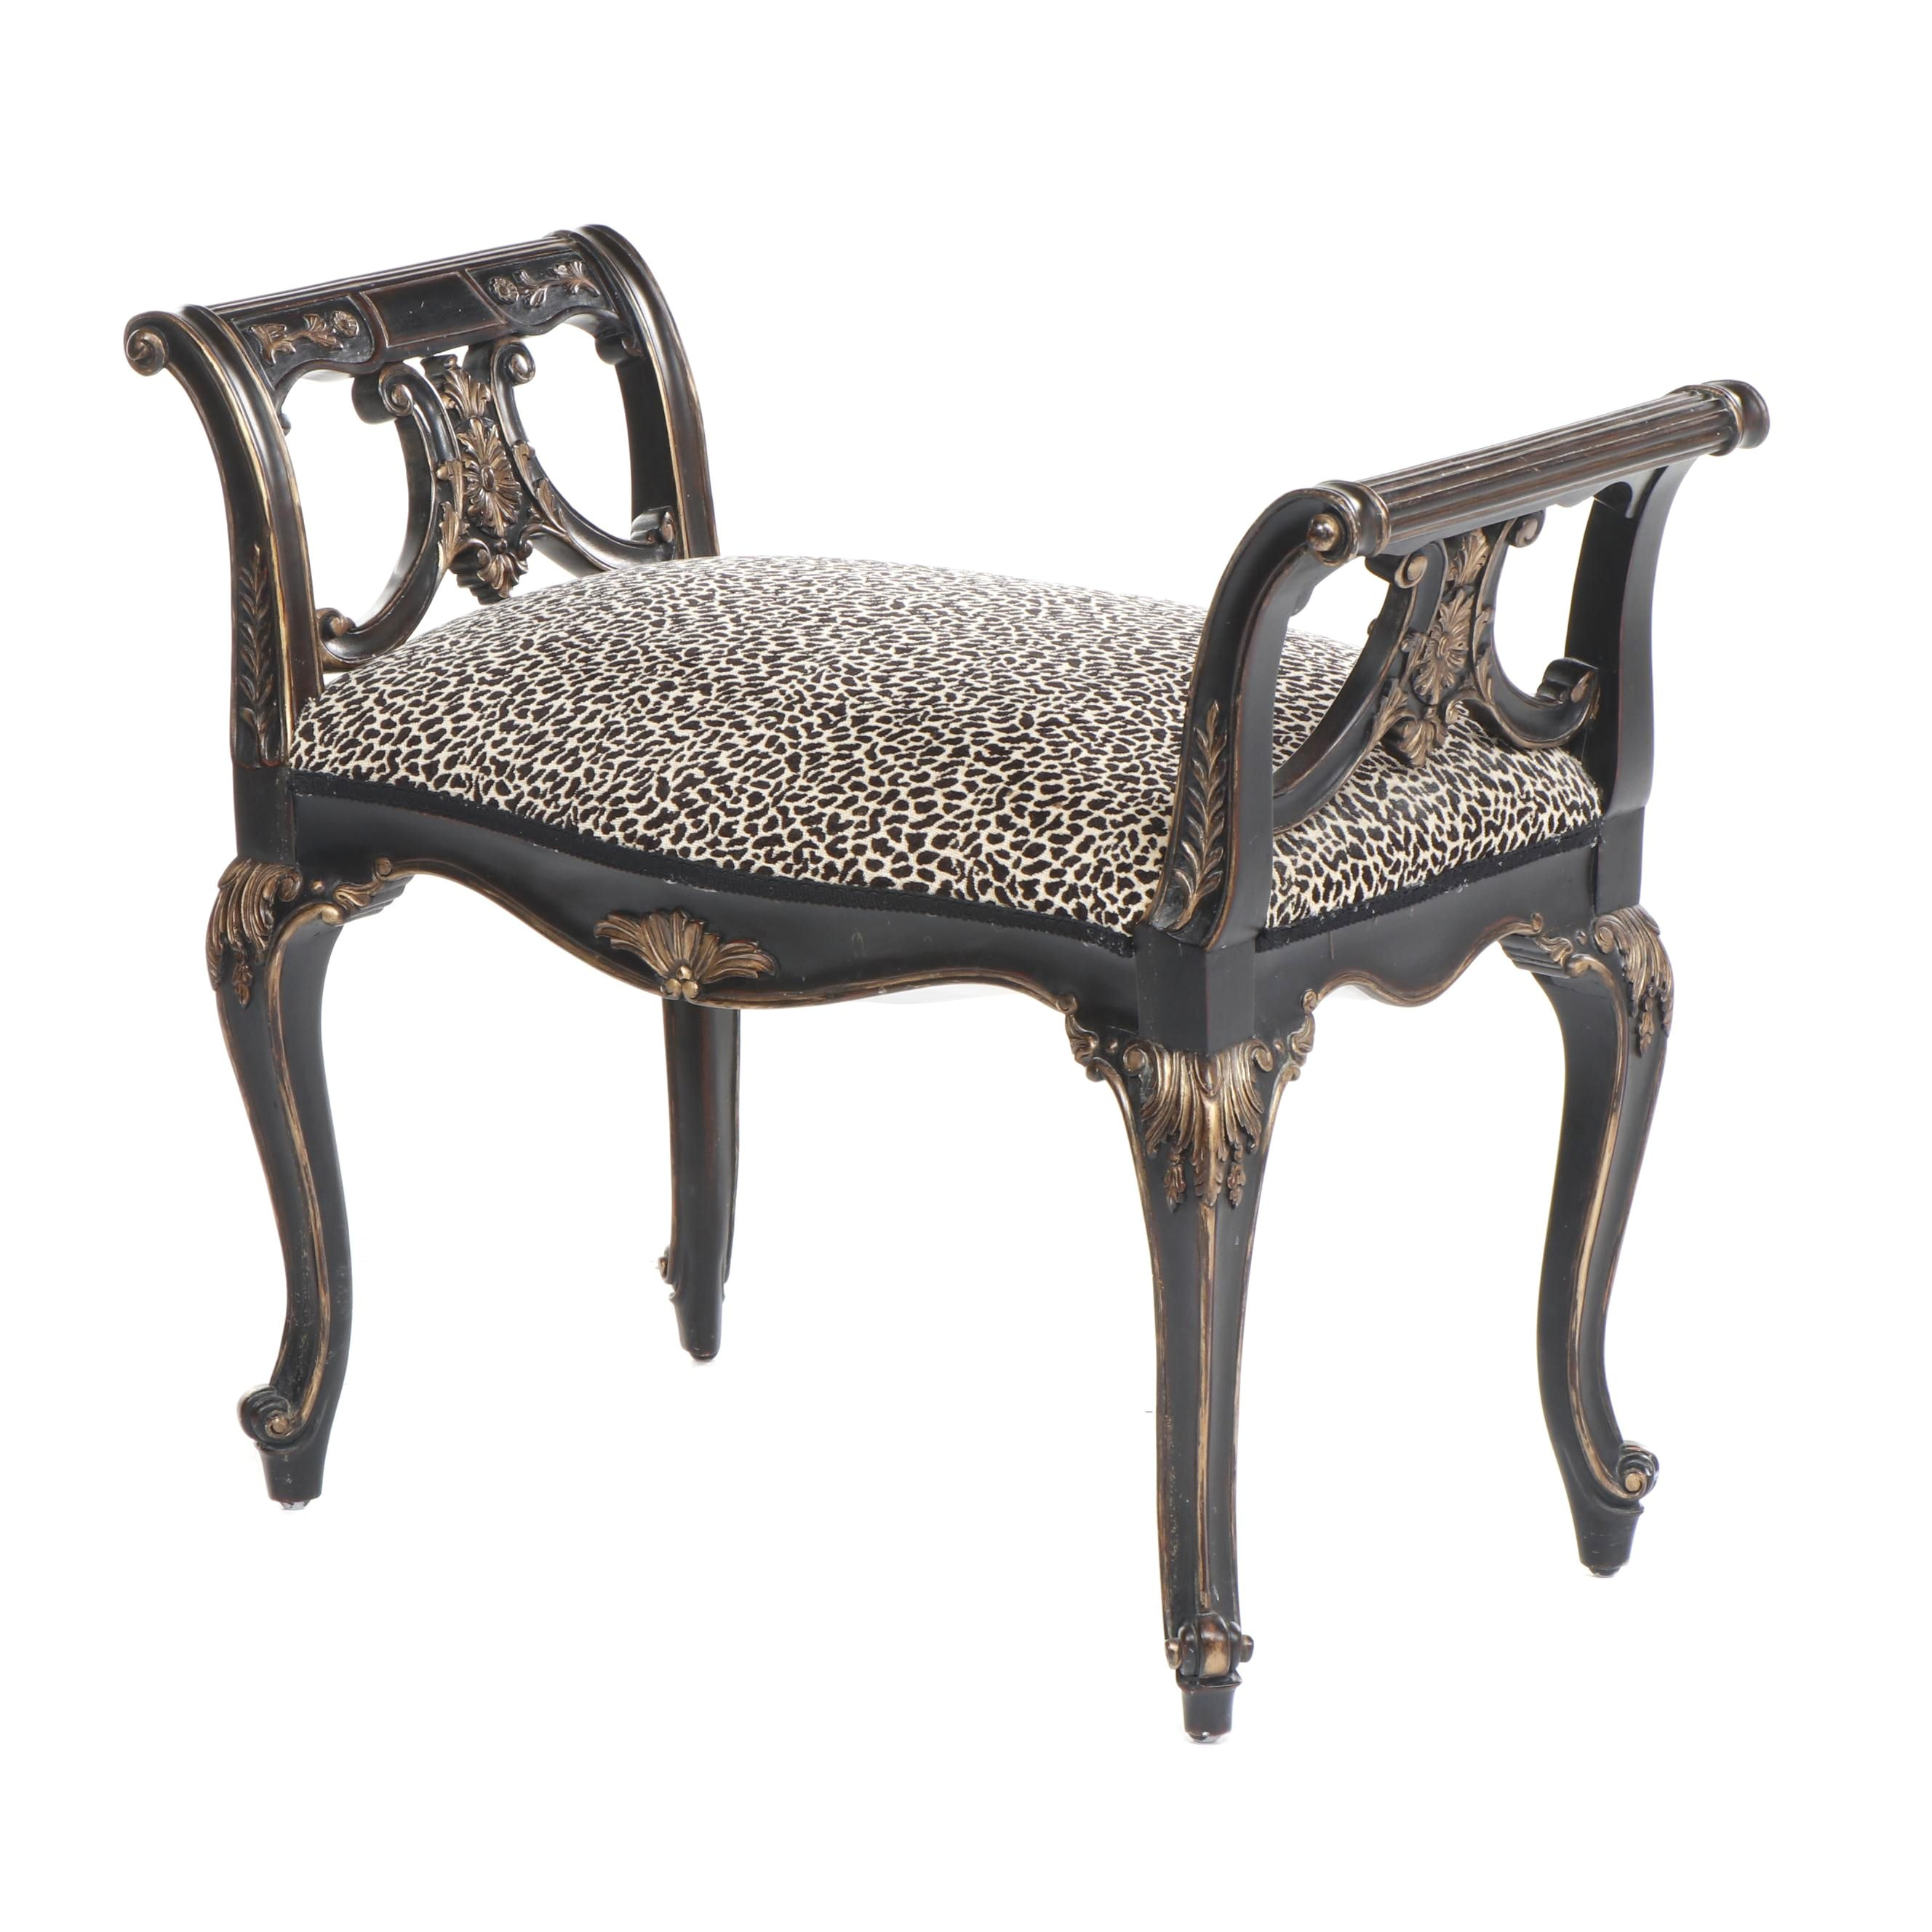 Contemporary French Provincial Style Bench with Leopard Print Upholstery